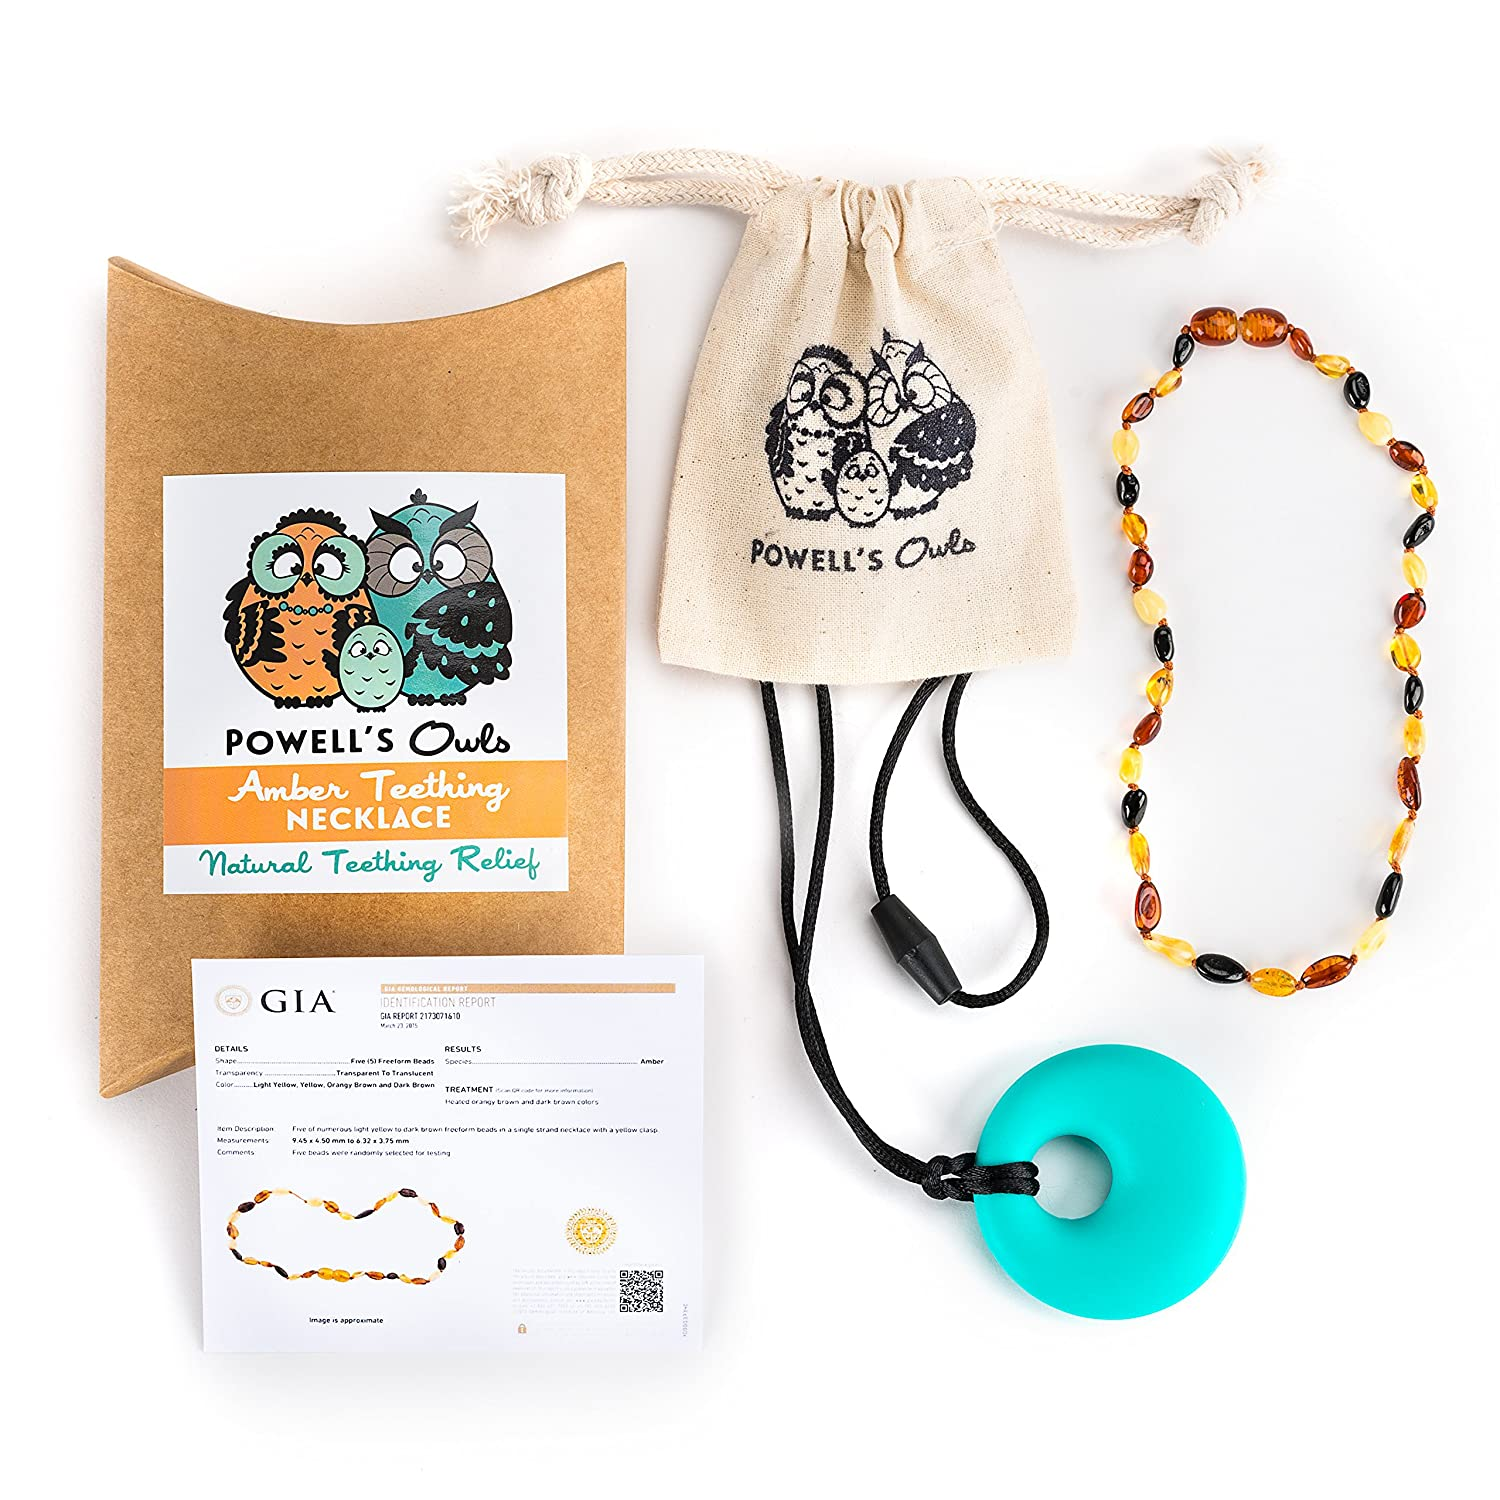 Baltic Amber Teething Necklace Gift Set